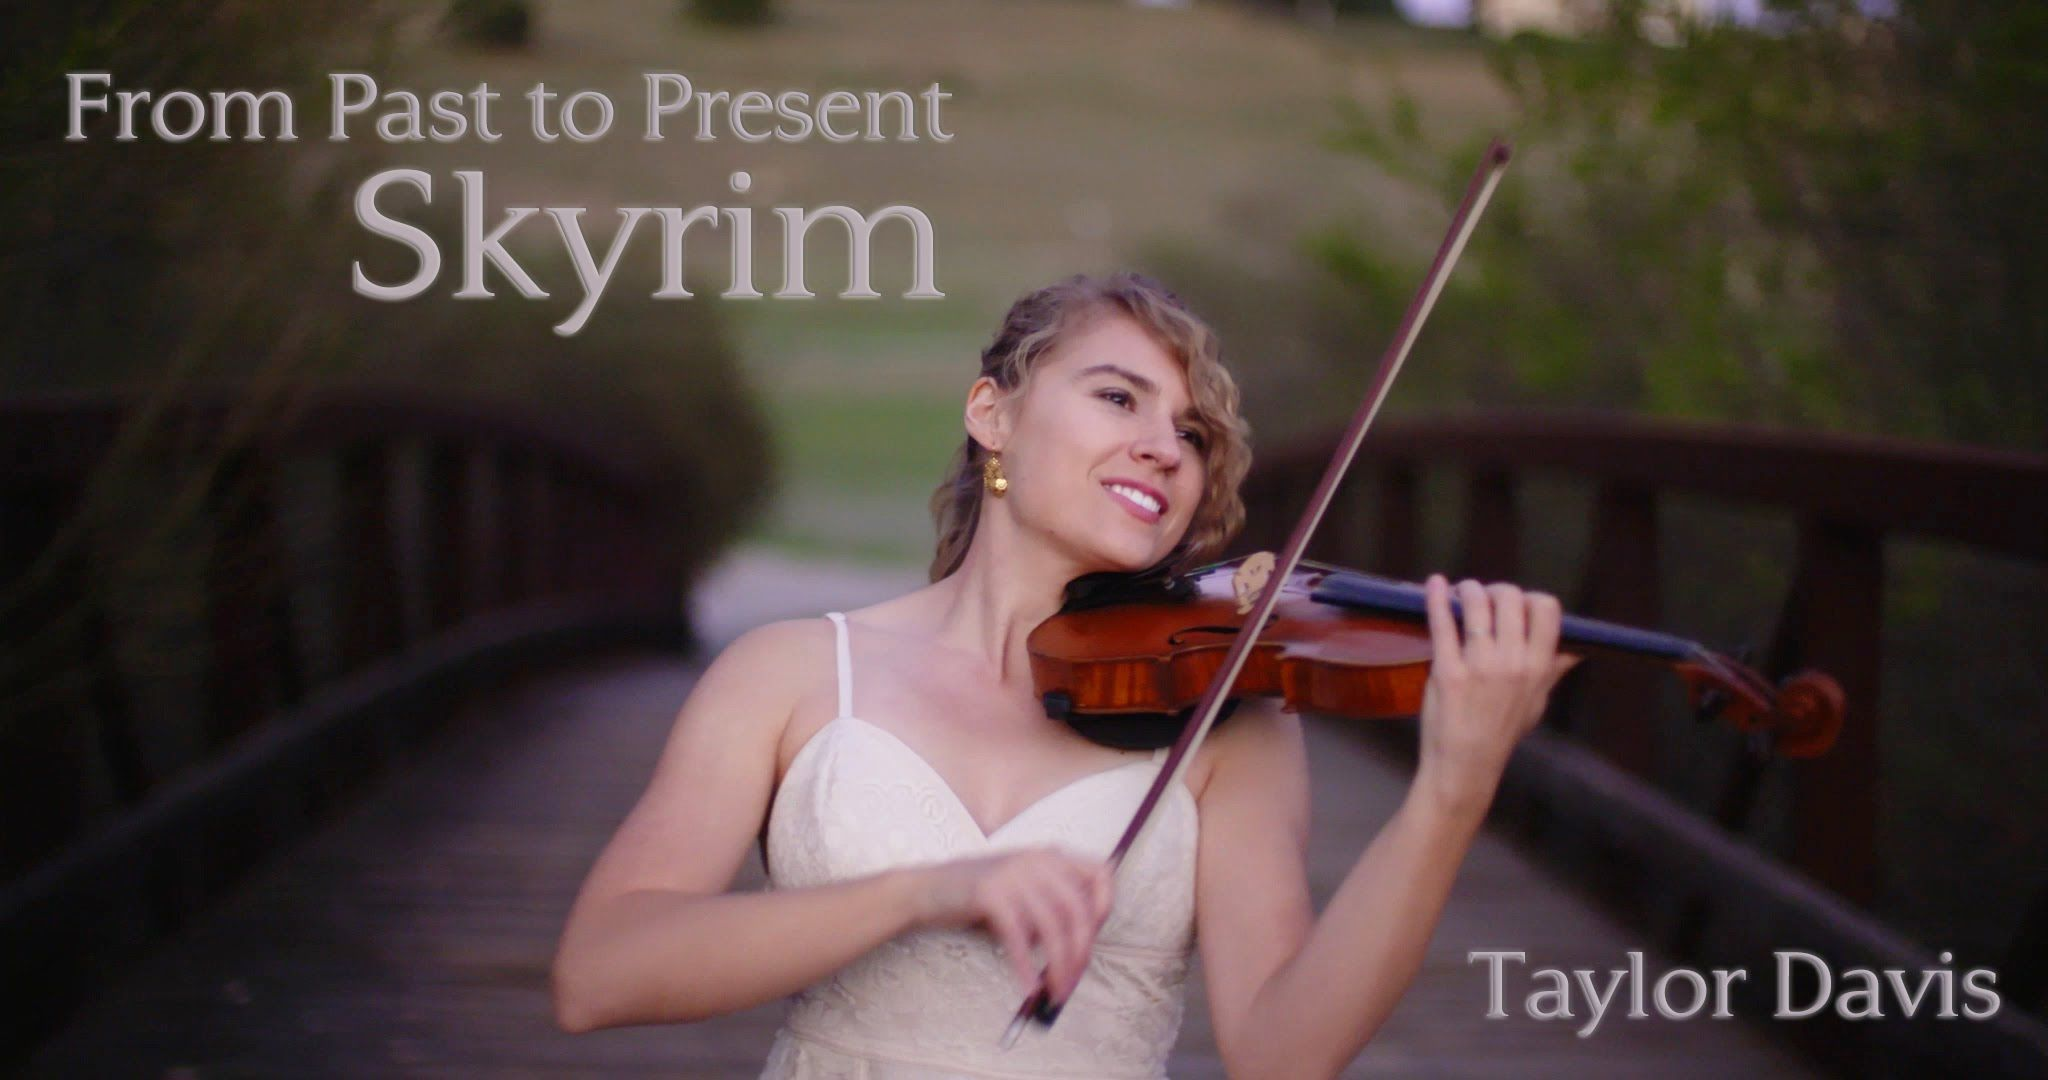 Skyrim From Past To Present Violin Cover Taylor Davis